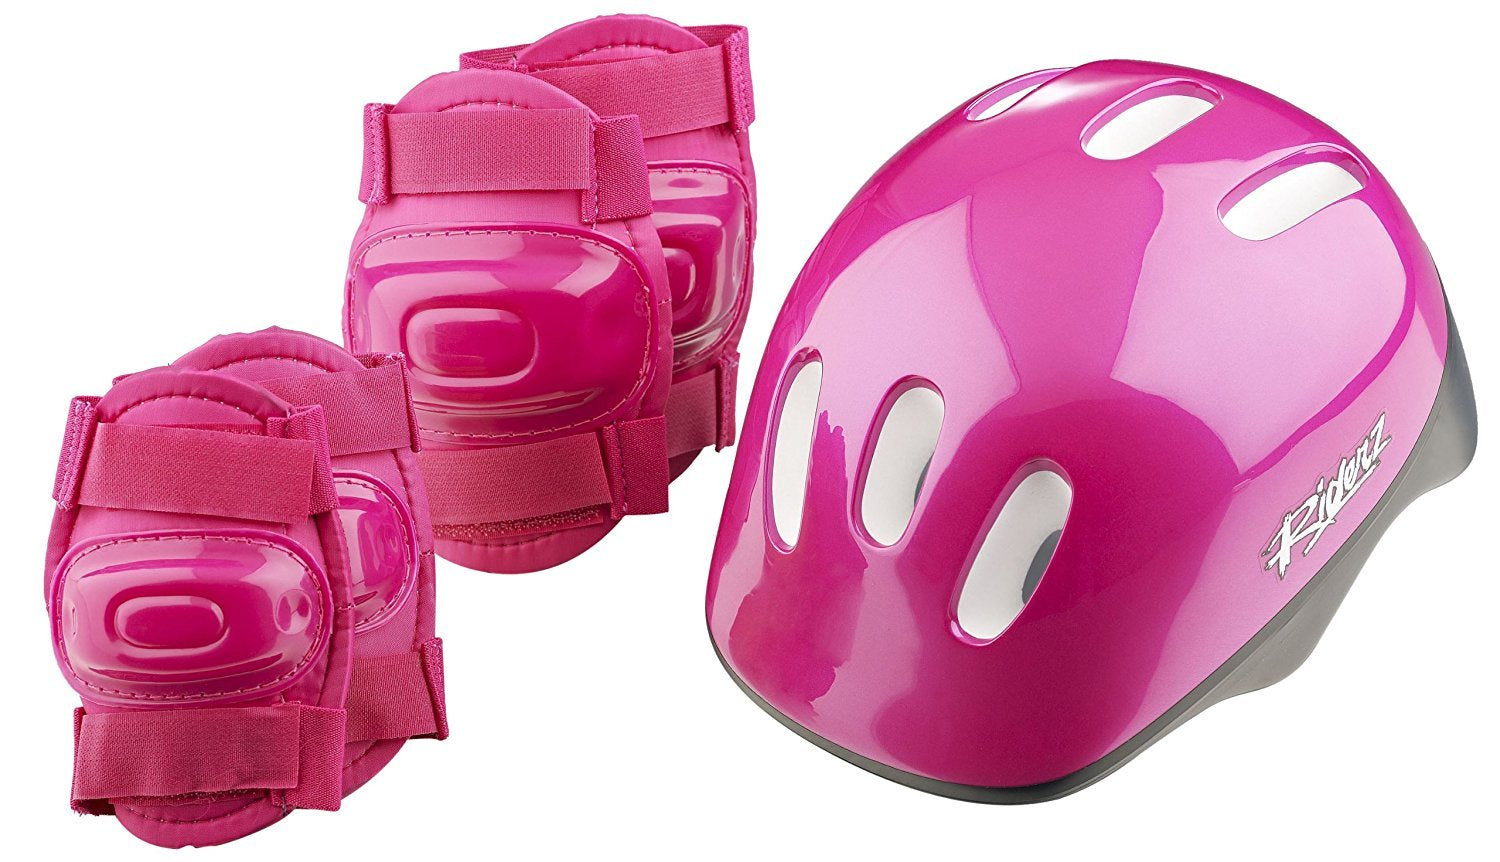 Helmet & Pad - Girls Pink